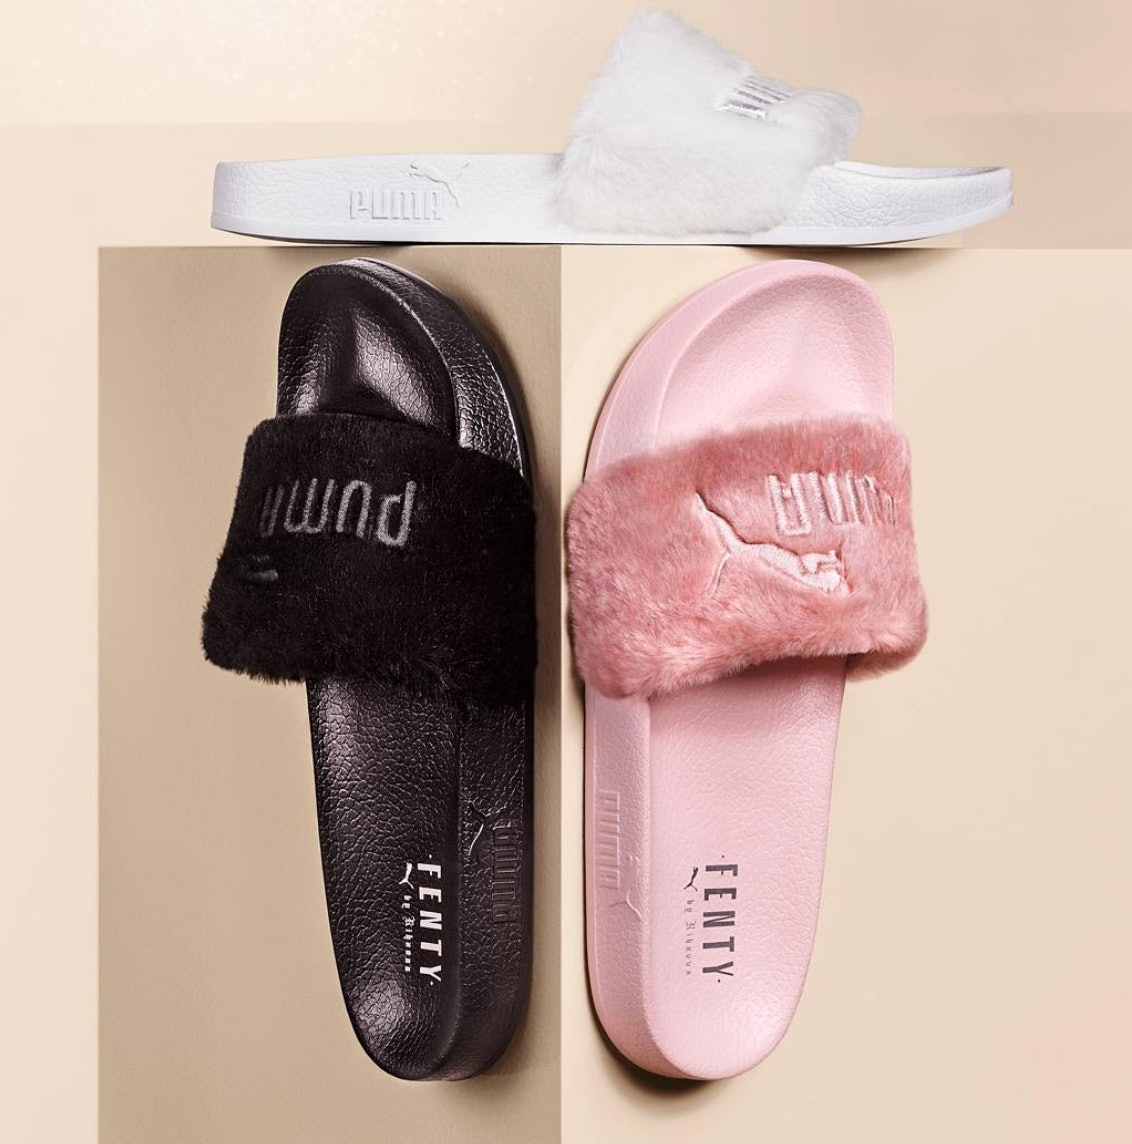 Can You Still Buy Rihanna Puma Fur Slides In Stores  Find Out Where They  Might Be b0e6fb0bbd